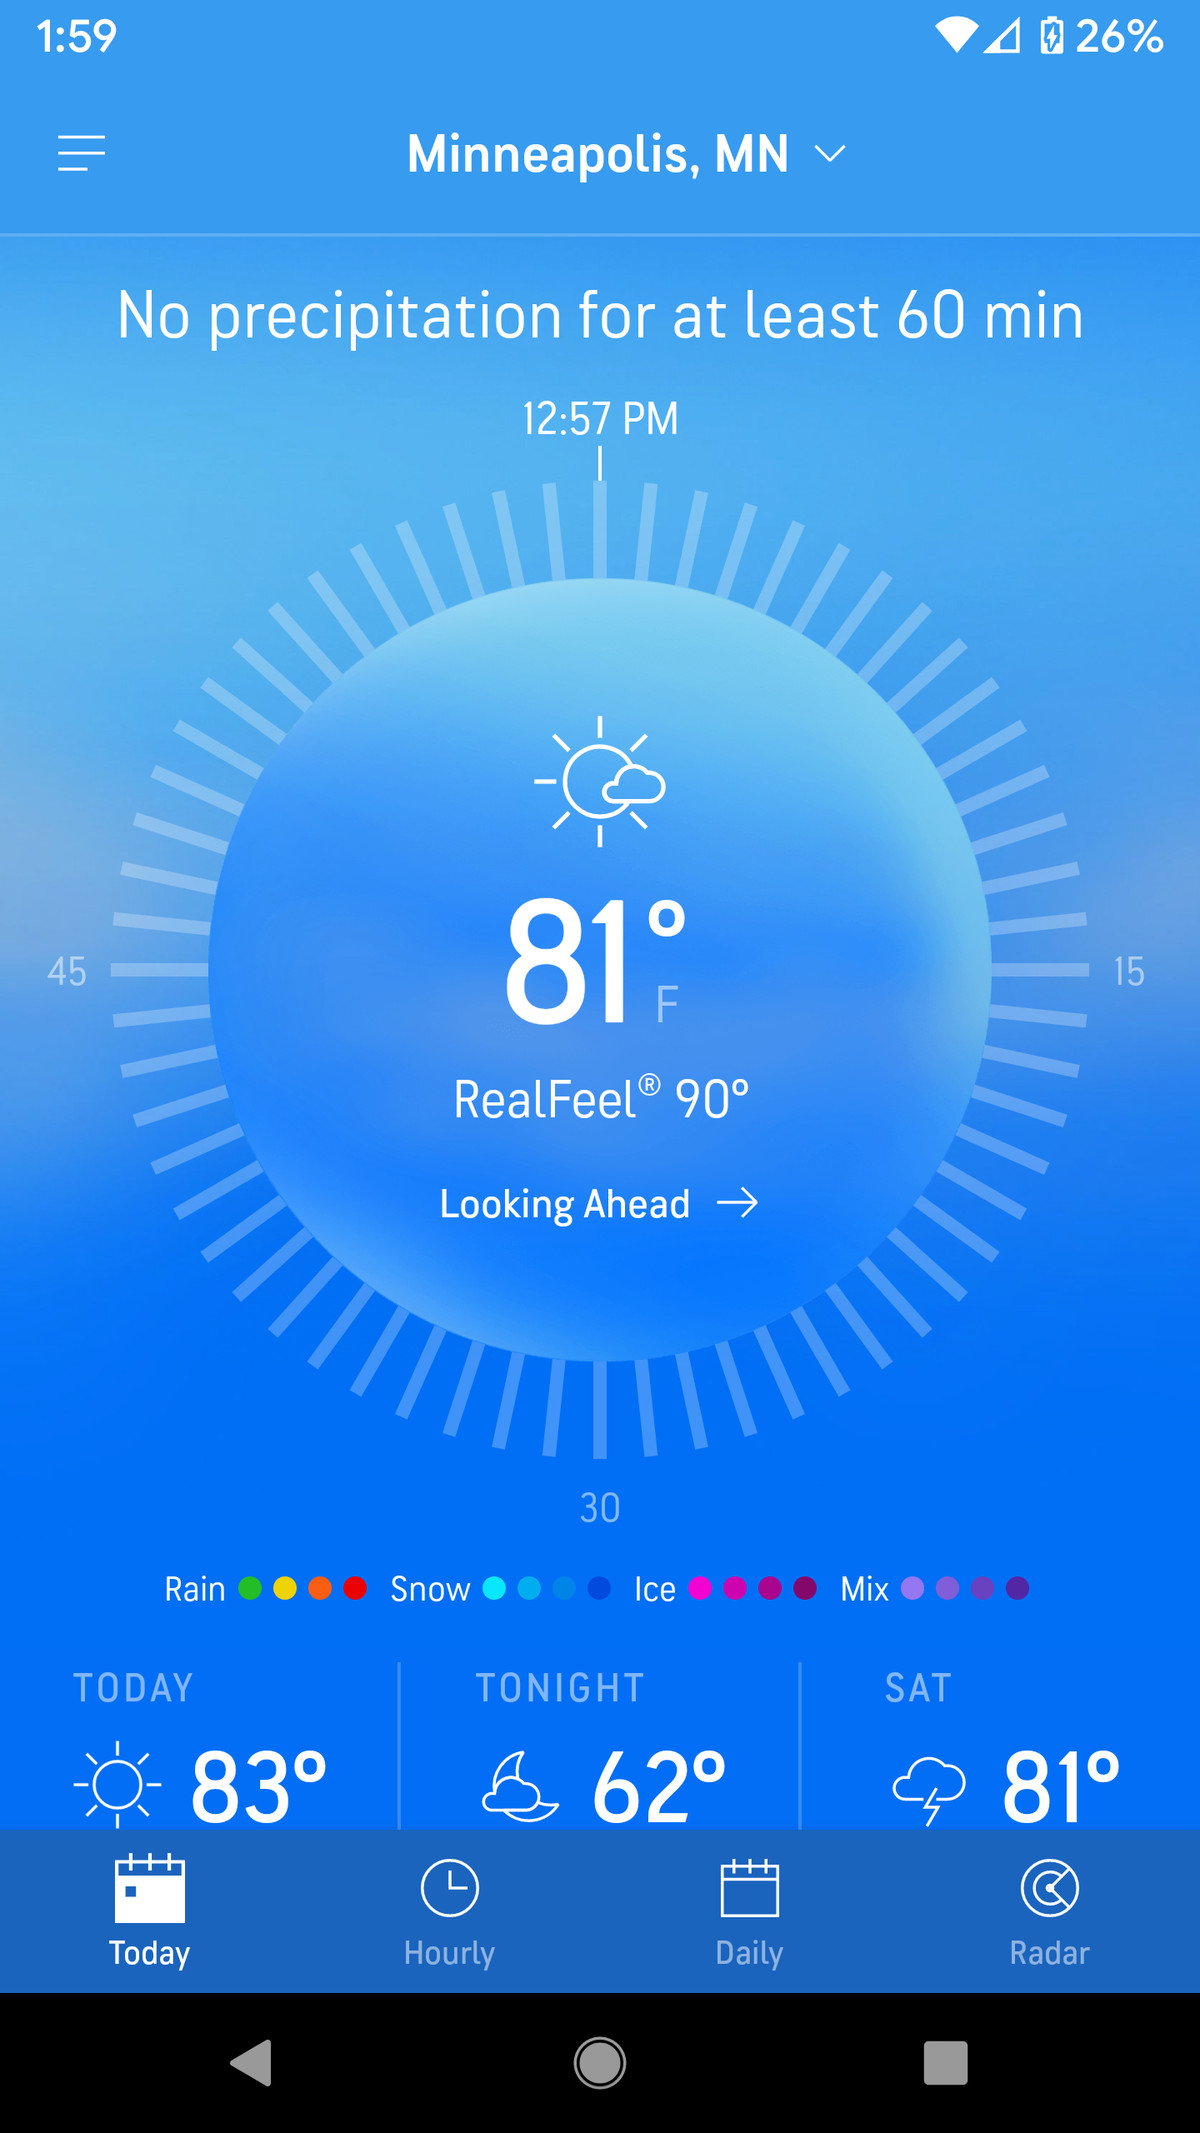 AccuWeather's recently redesigned interface is attractive and informative.